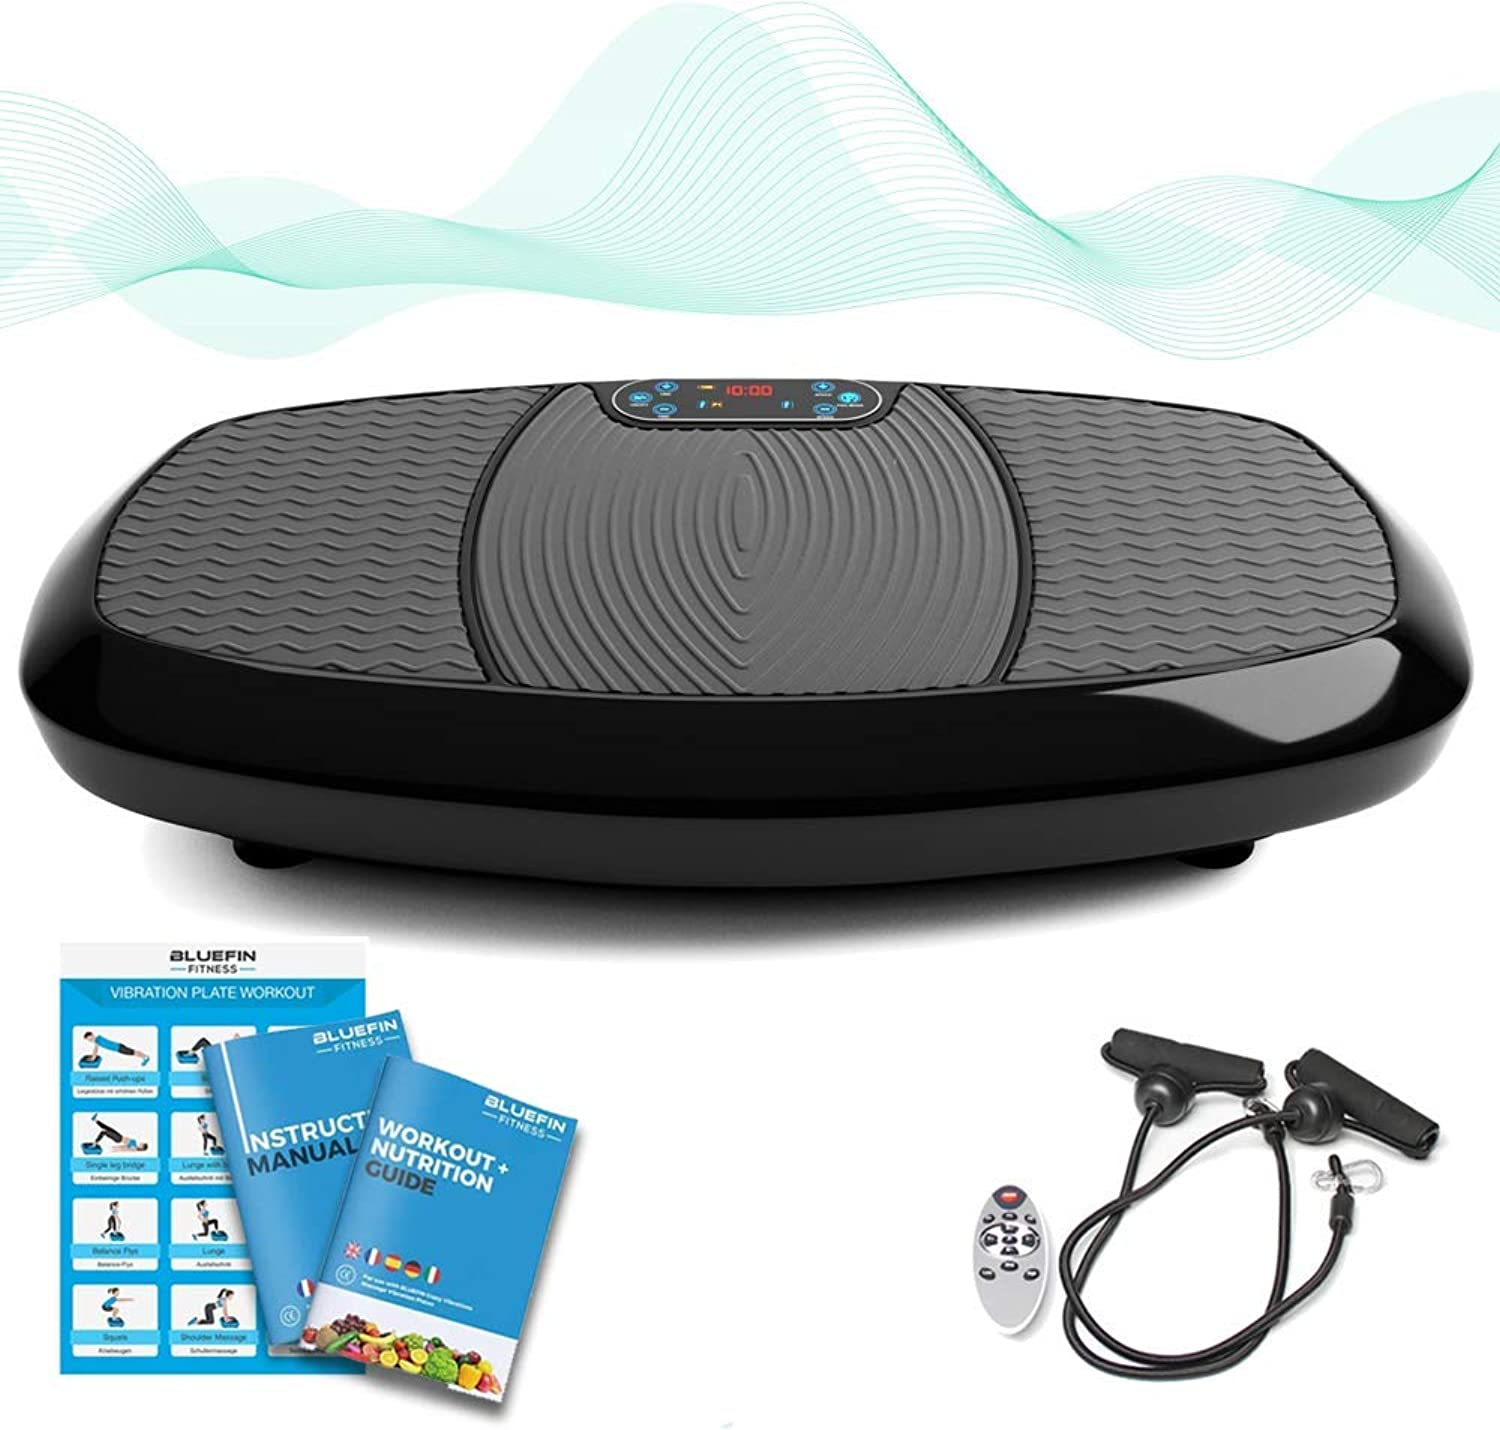 blueeefin Fitness Dual Triple Motor Vibration Platform   Oscillation, Vibration + 3D 4D Motion   Huge AntiSlip Surface   blueeetooth Speakers   Ultimate Fat Loss   Unique Design   Get Fit at Home